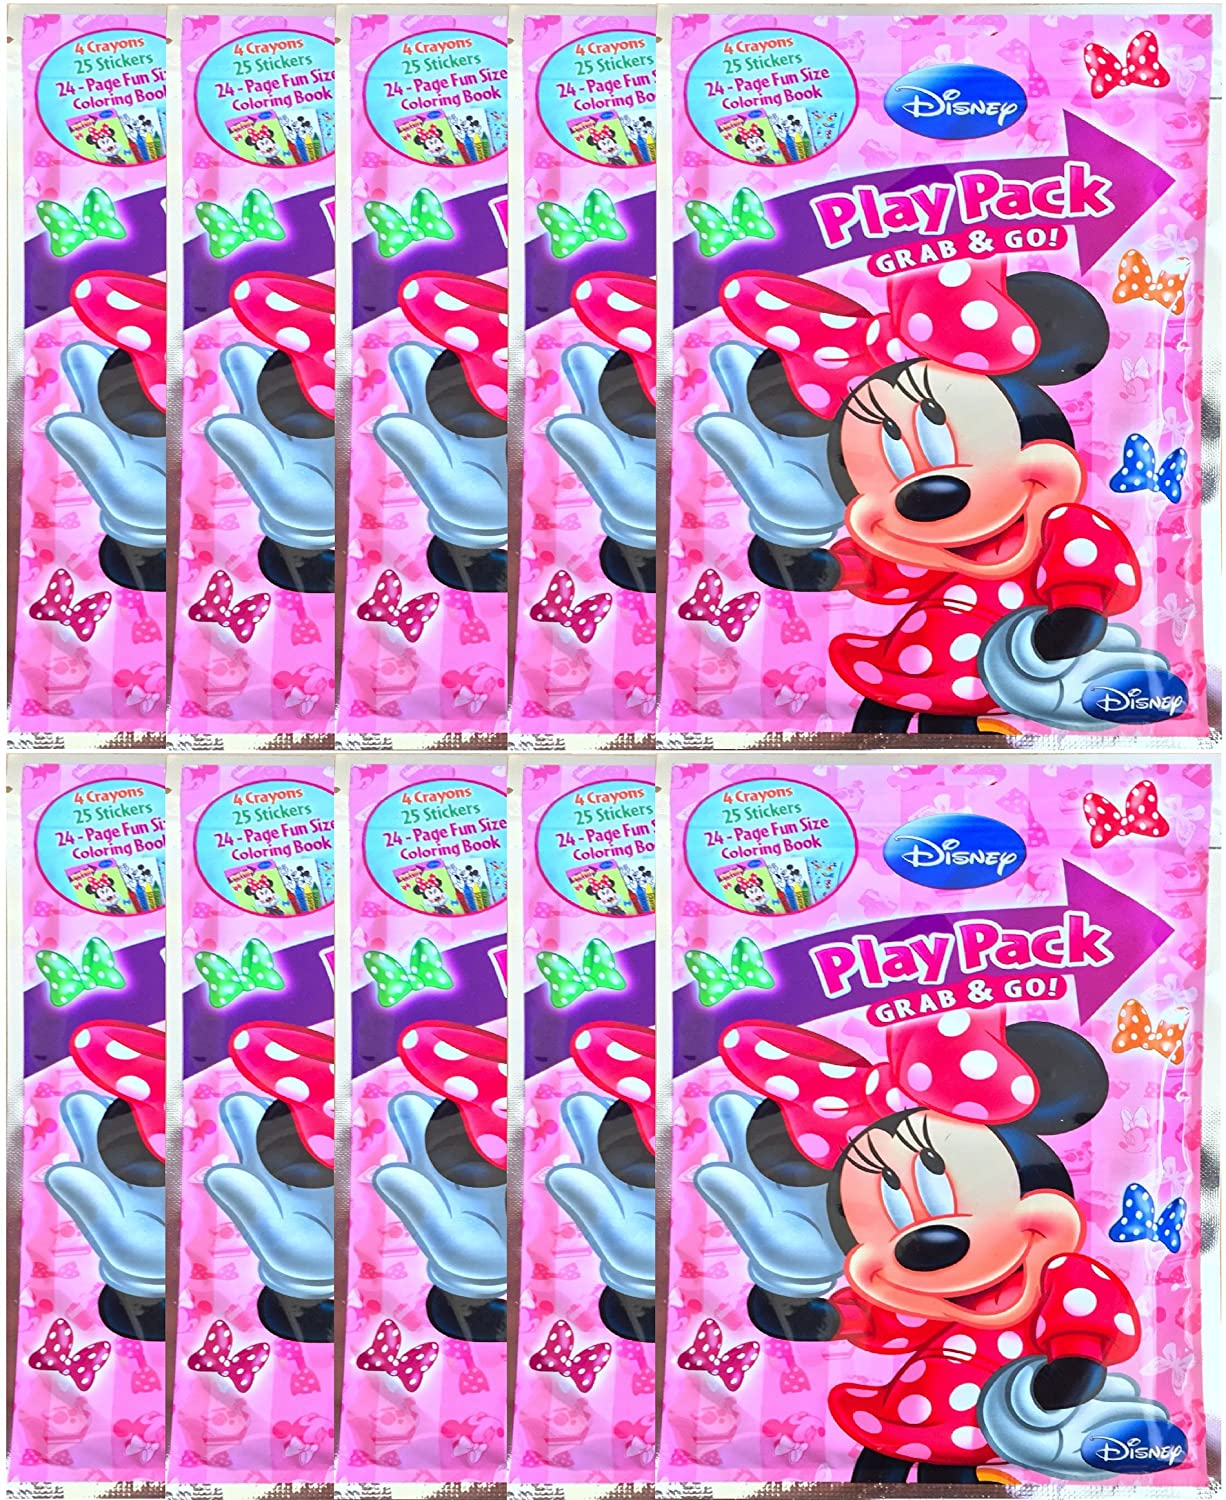 Amazon.com: Minnie Mouse Play Pack Grab and Go Coloring Book ...